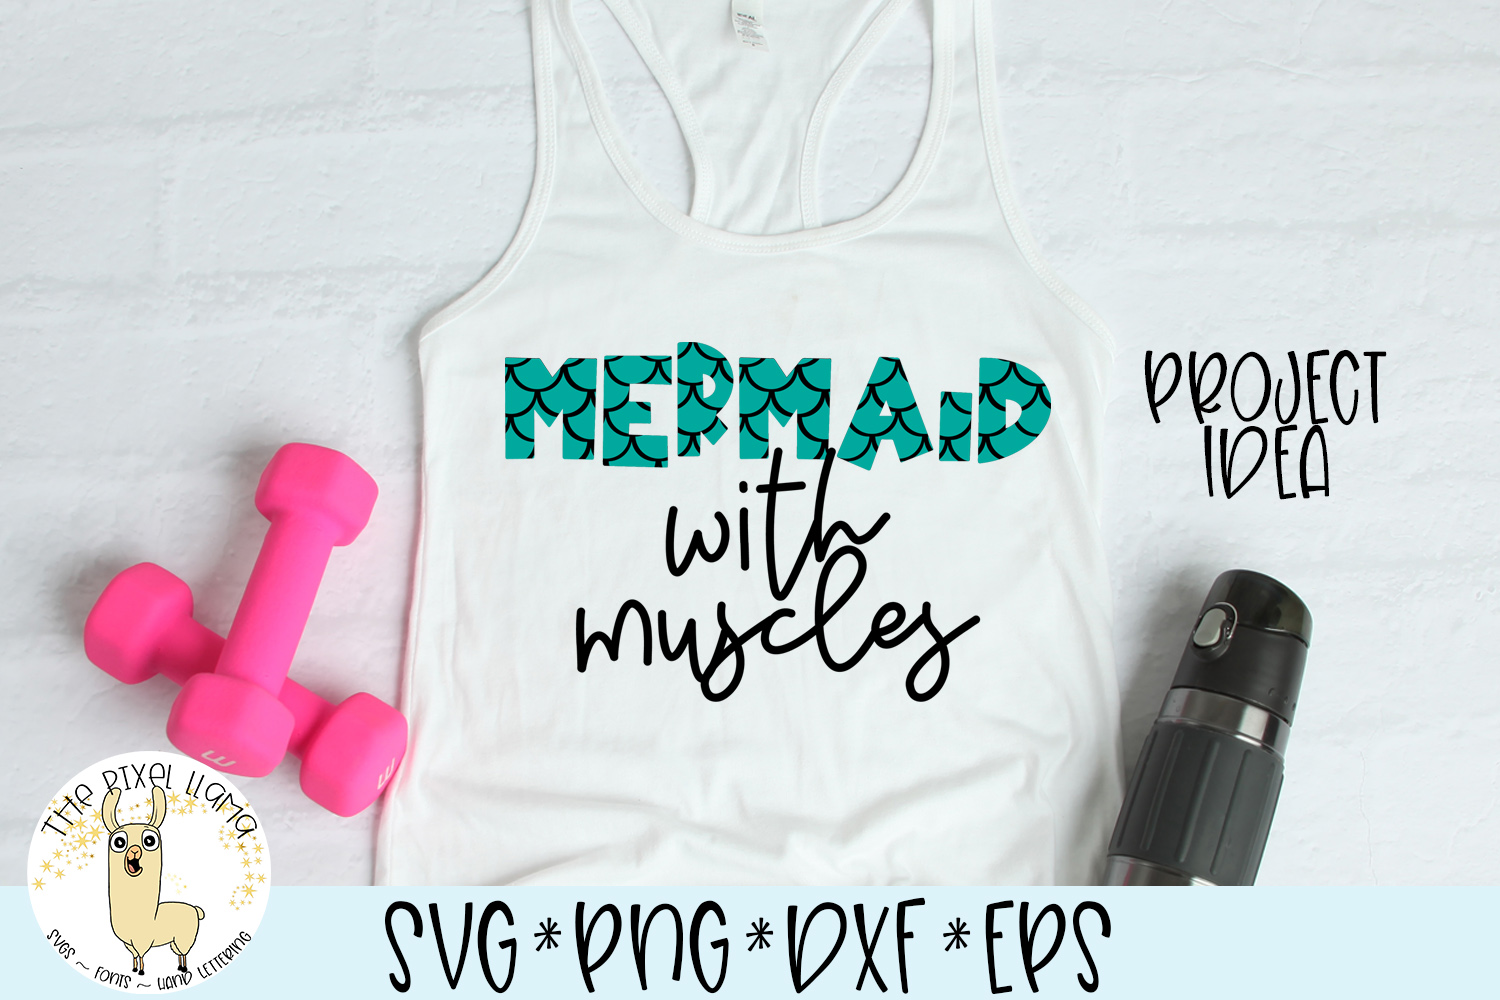 Mermaid Chameleon A Block Font With Mermaid example image 3